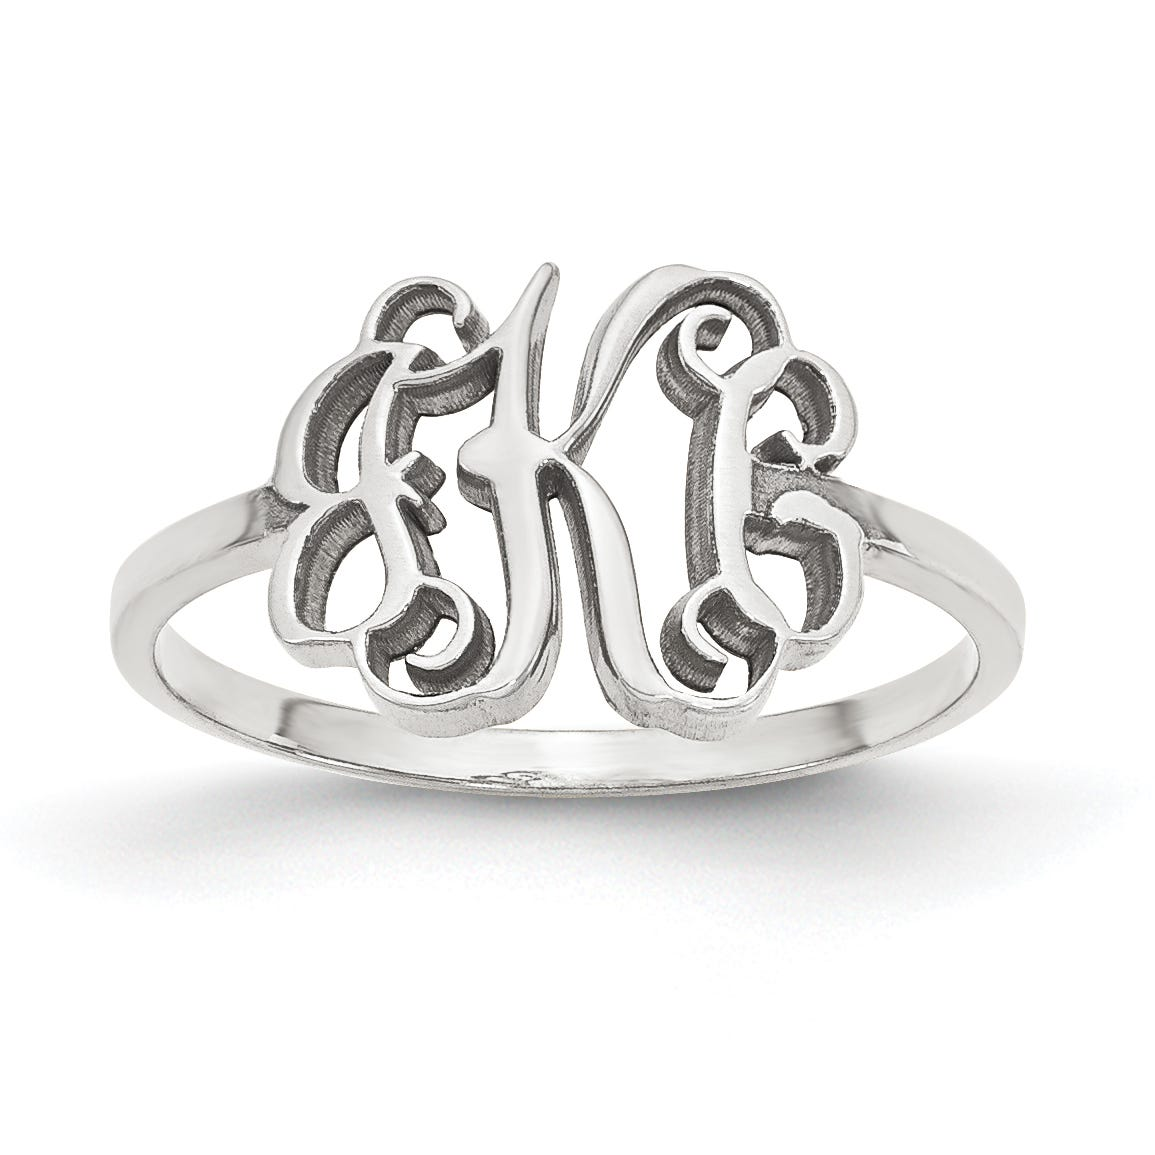 Laser Polished Script Monogram Ring in Sterling Silver (up to 3 letters)